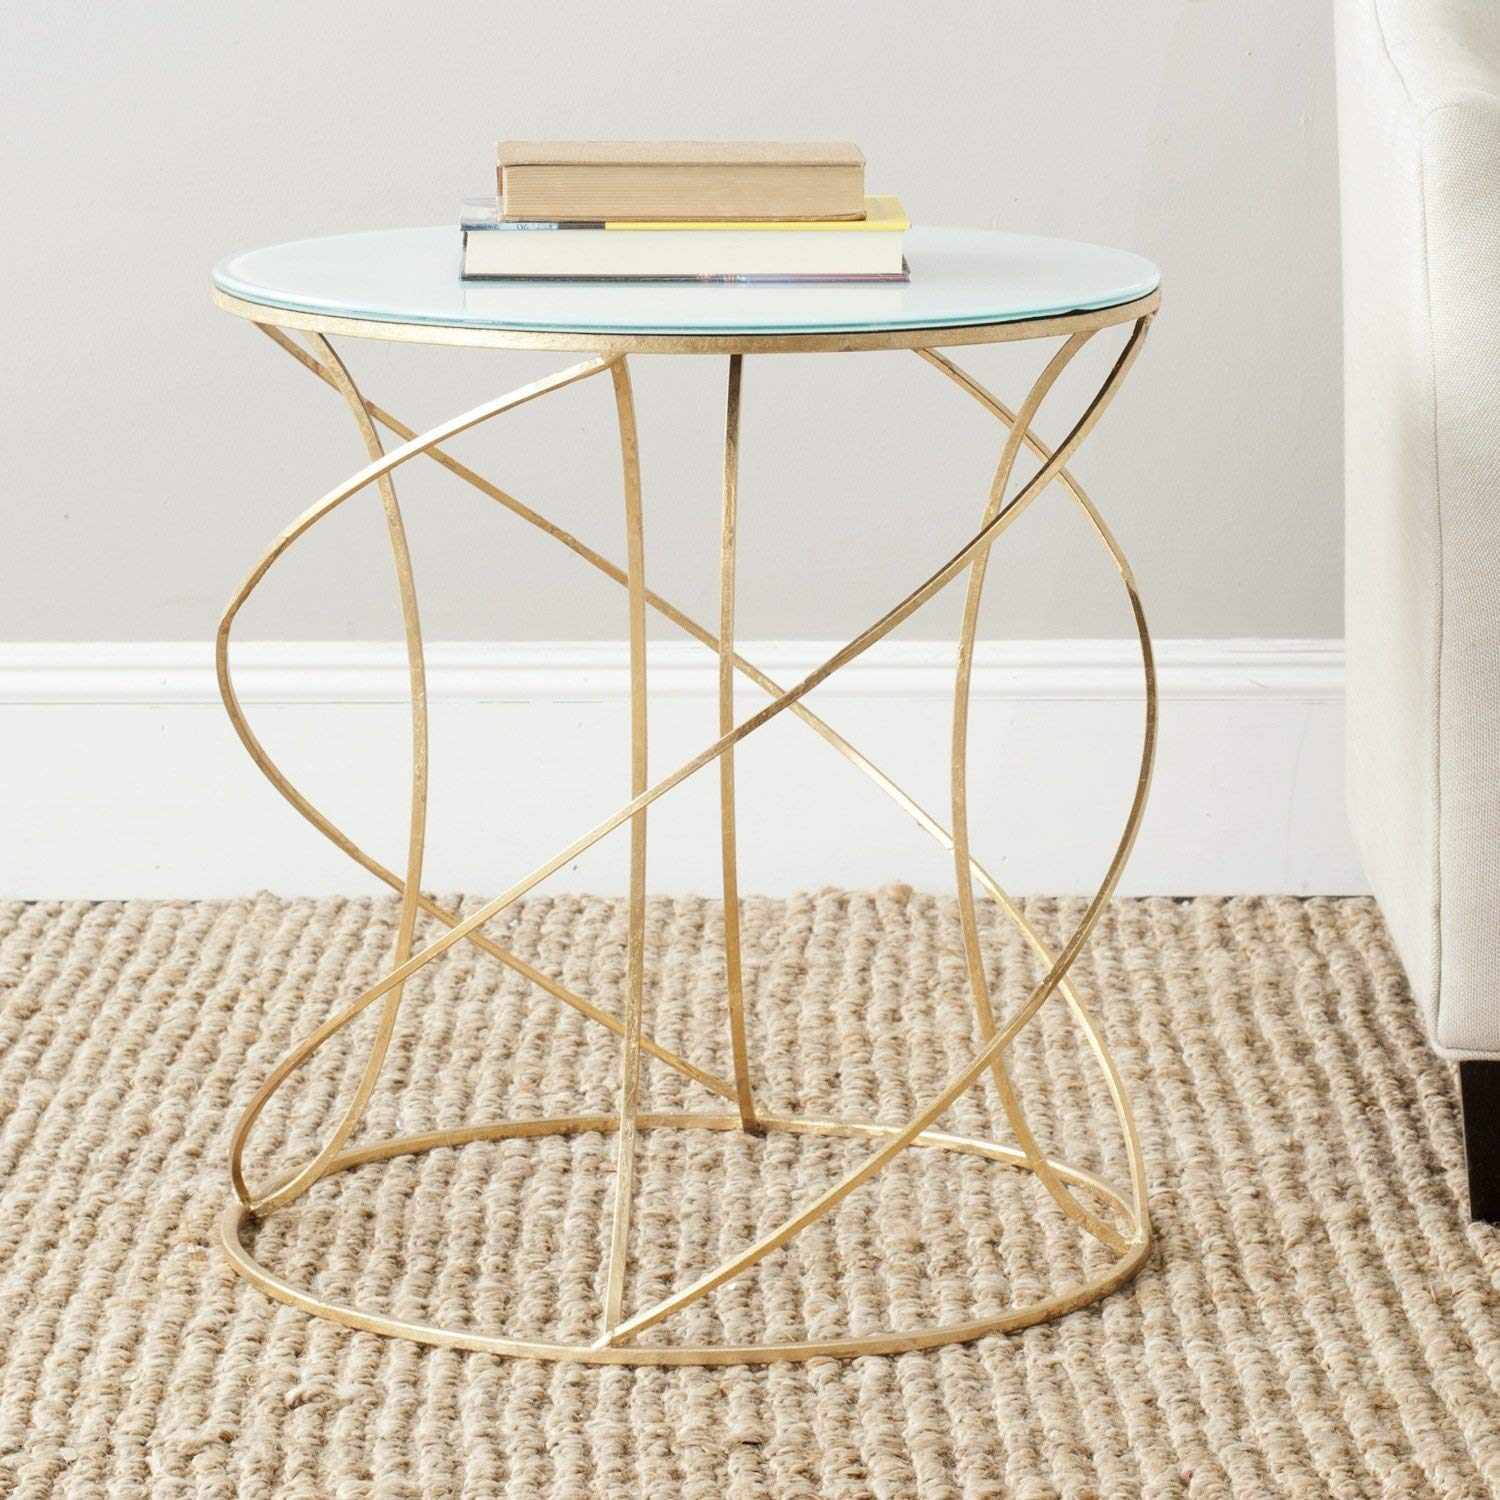 cool target side table gold steals office decora lamps industrial designs ideas decorating terrazzo decor lamp for metal scandi drawing marble sofa rose living shades outdoor and